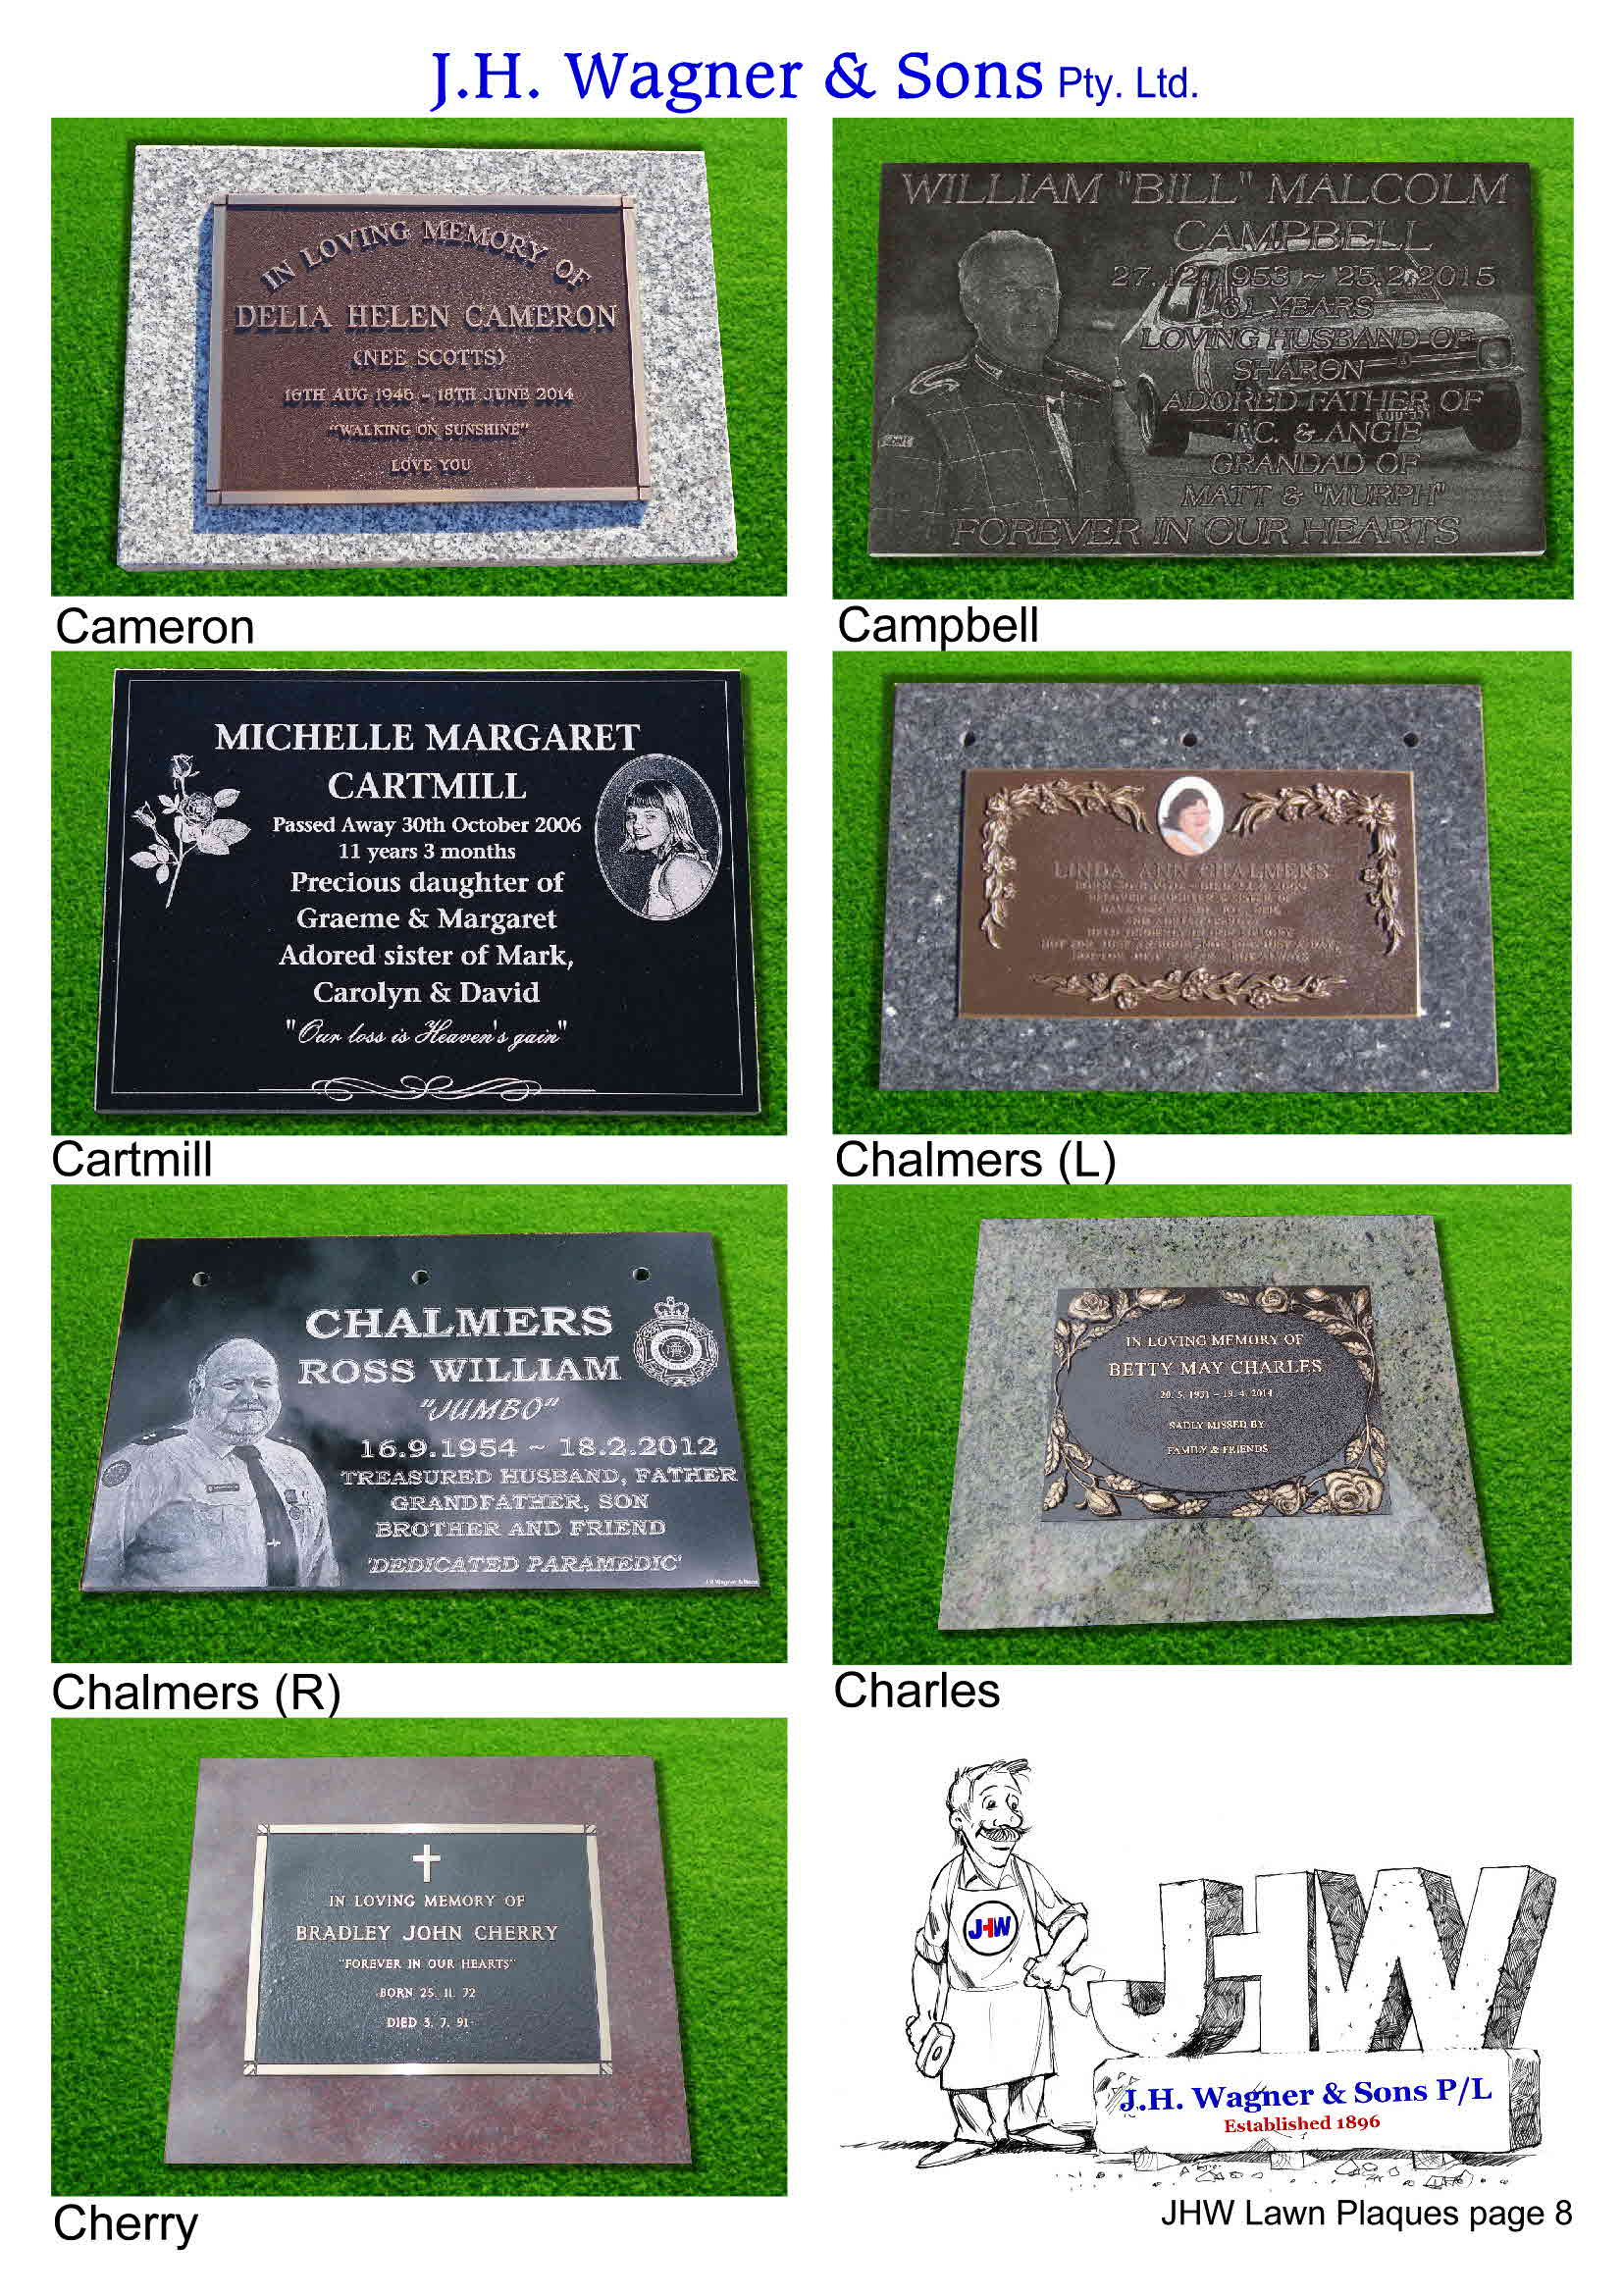 Memorial Lawn plaques by J.H. Wagner & Sons. Page 8